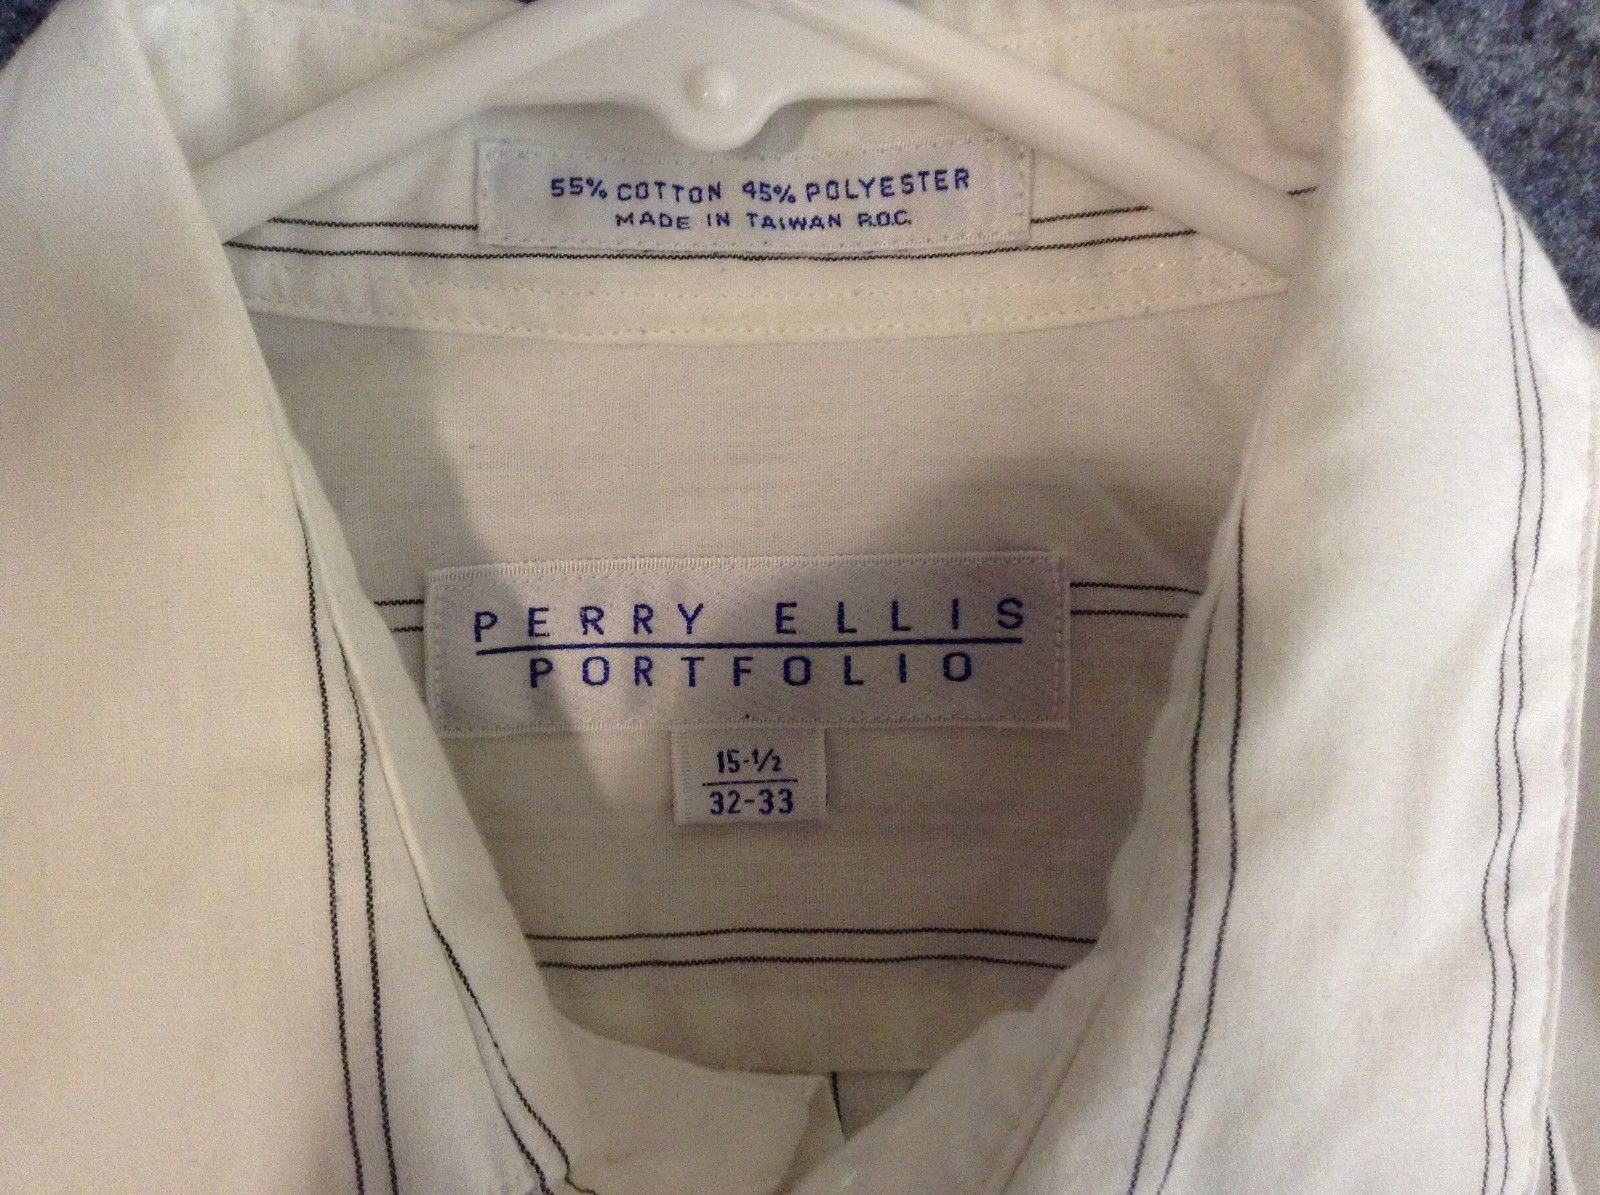 Perry Ellis Portfolio White w Gray Vertical Lined Shirt Sz 15.5 32/33